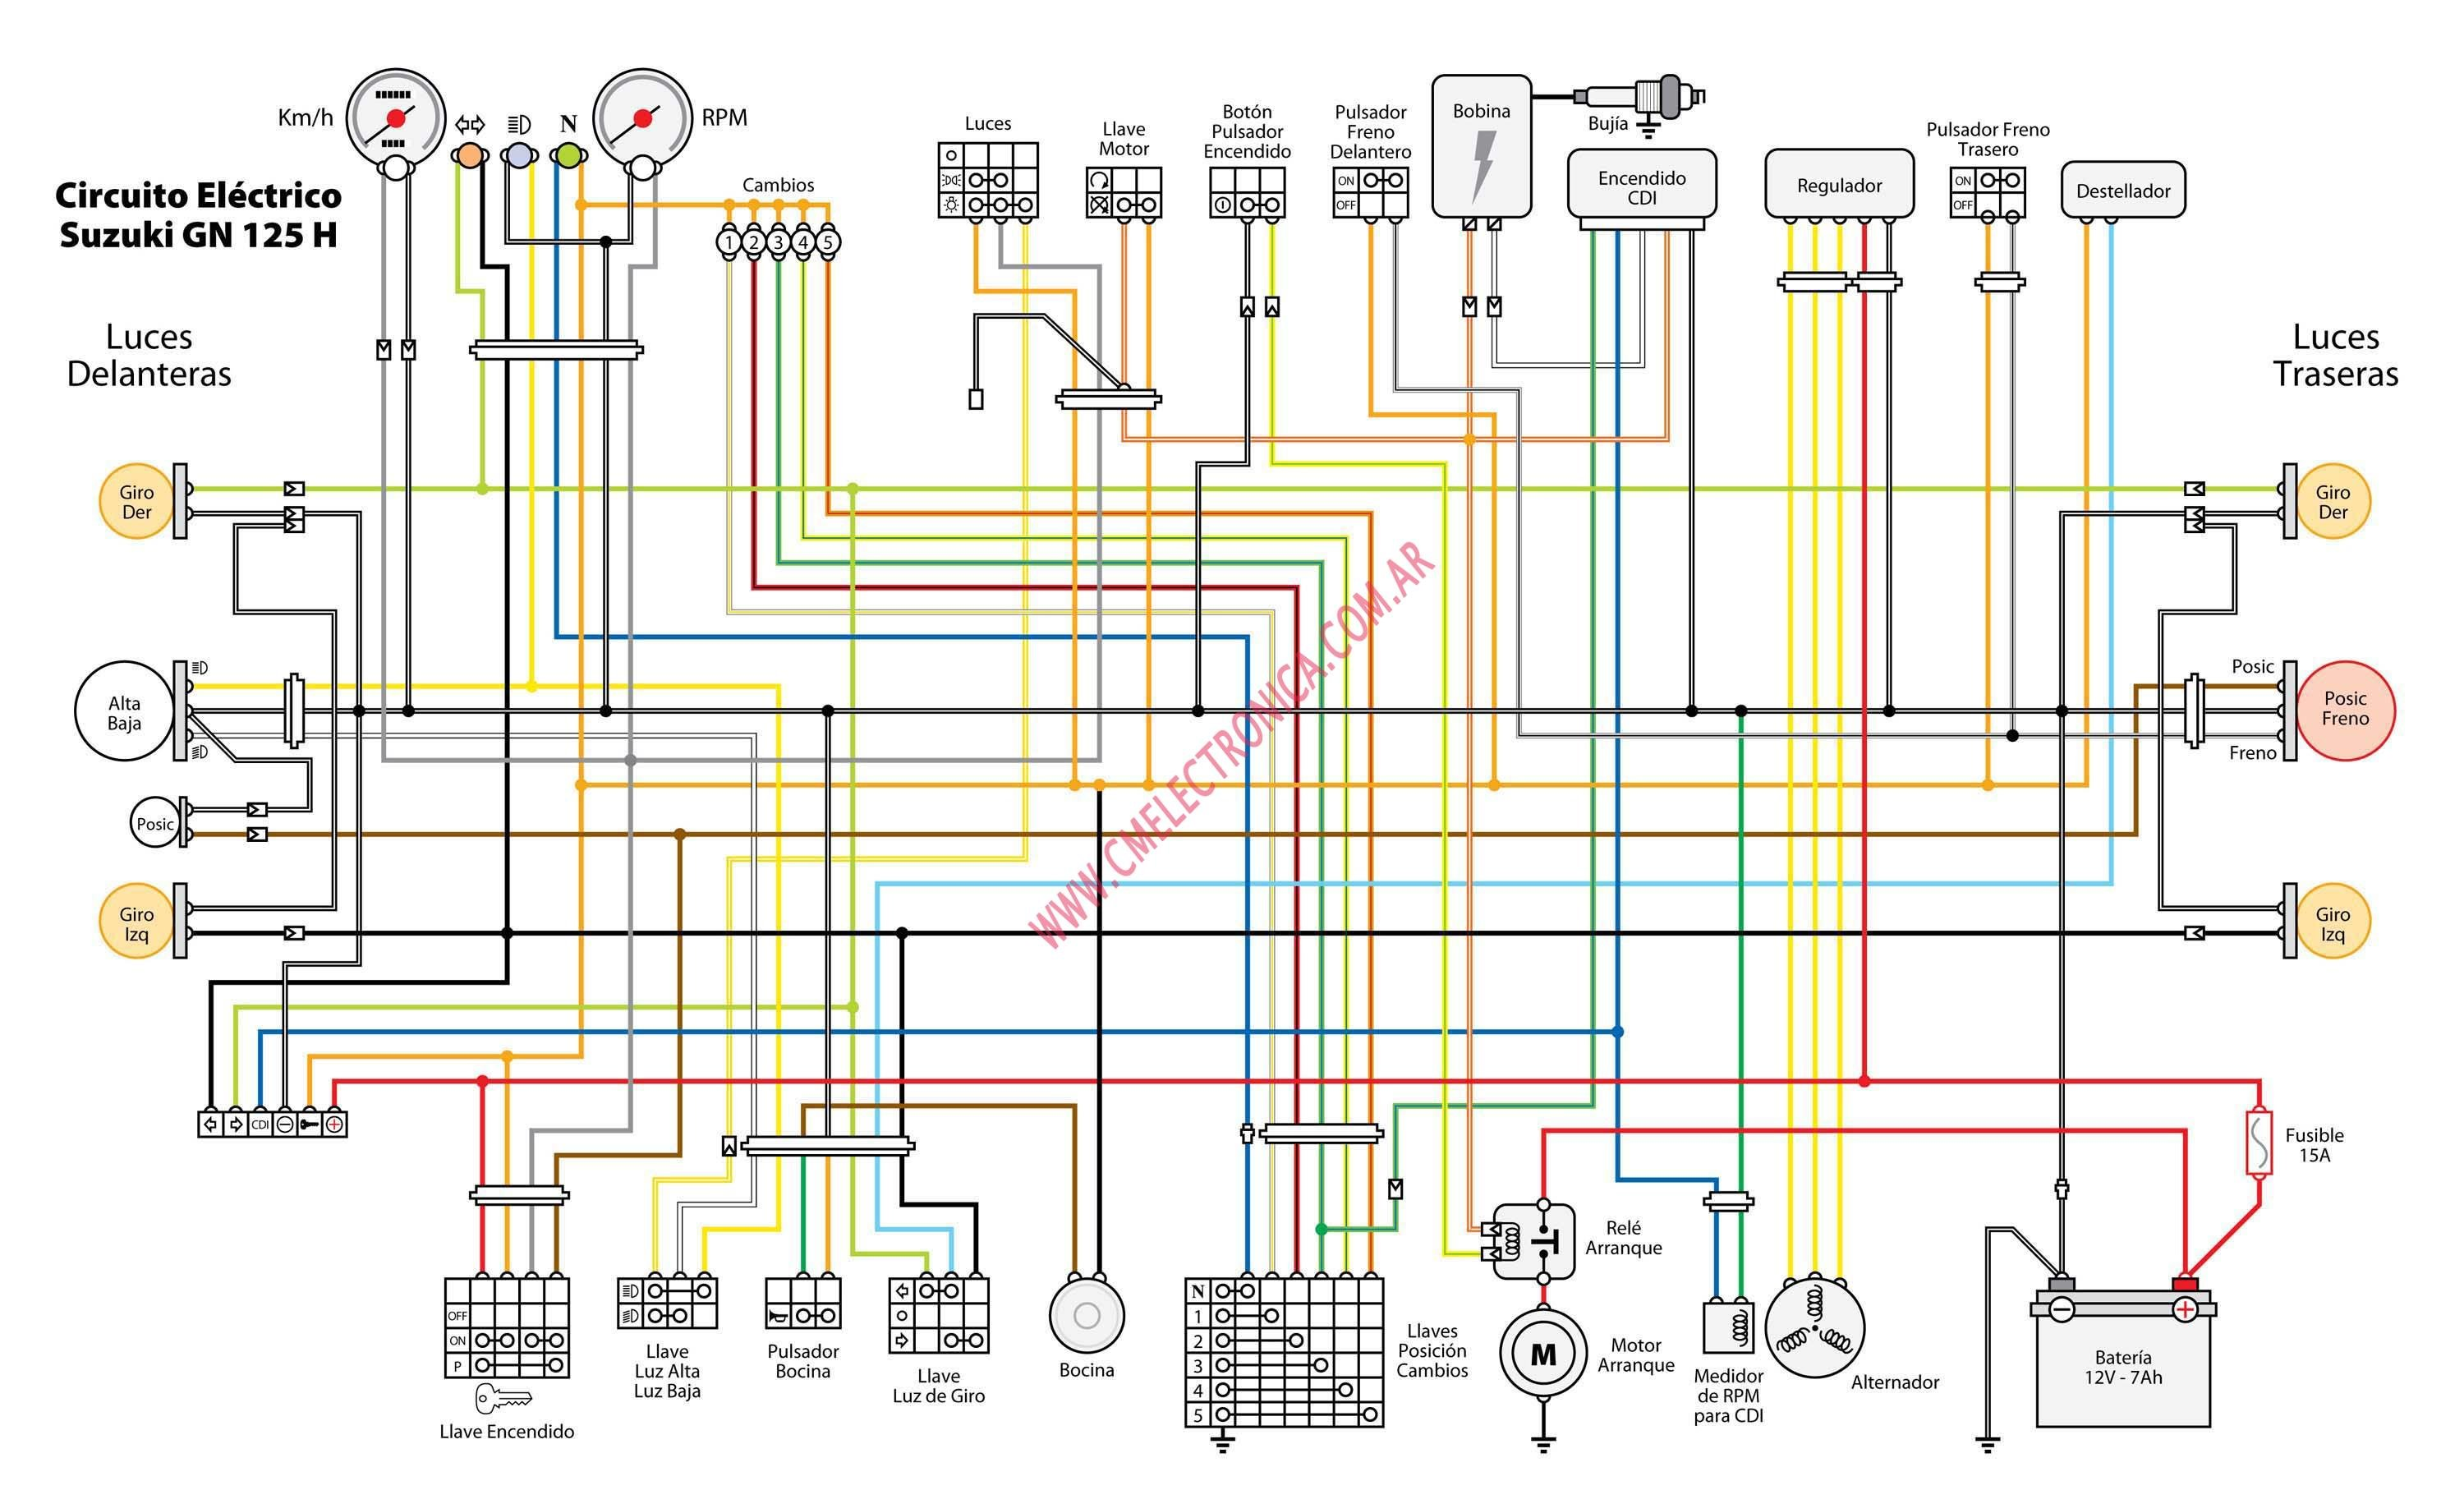 suzuki b200 wiring diagram suzuki lights wiring diagram #4